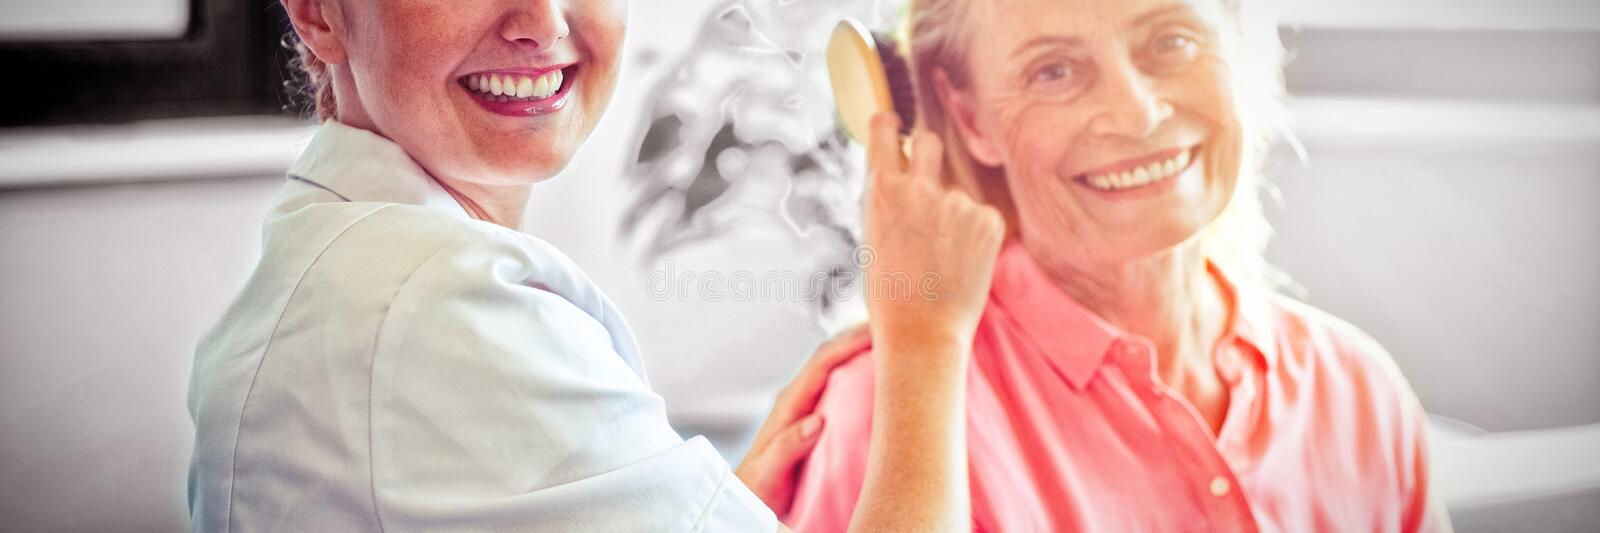 Female nurse combing hair of senior woman stock images